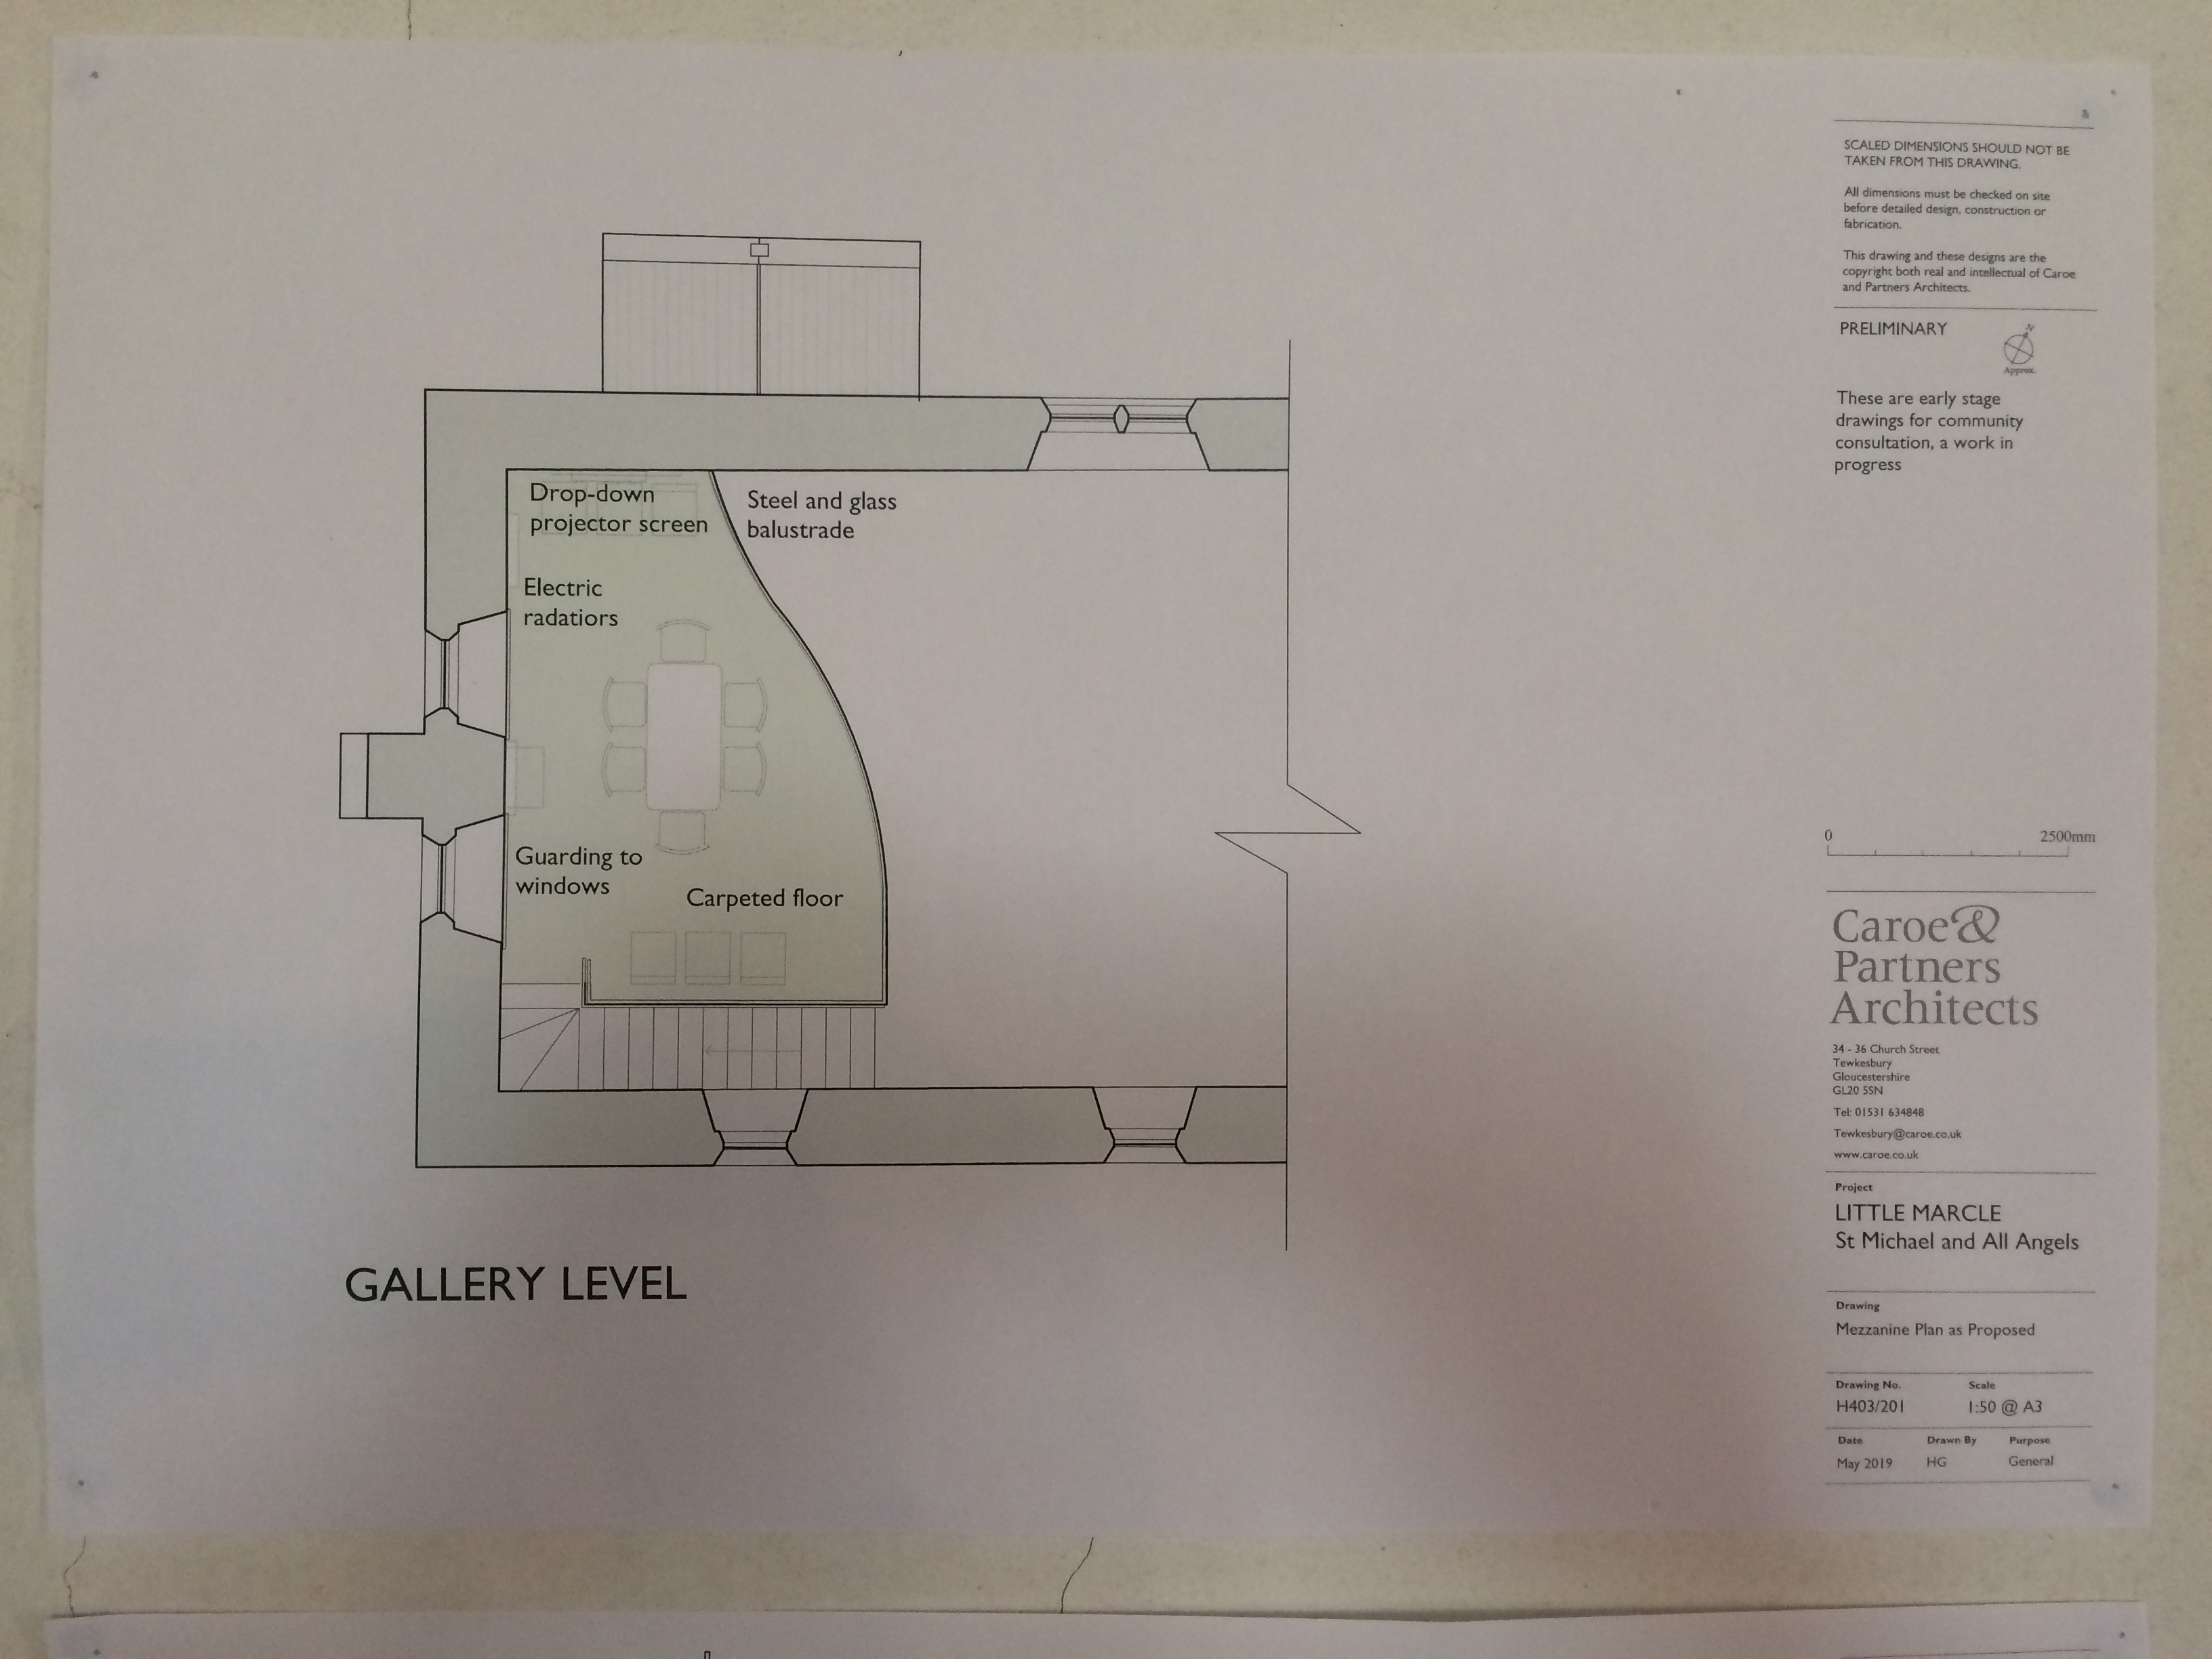 All Angels Church Plan Image Plan Gallery View